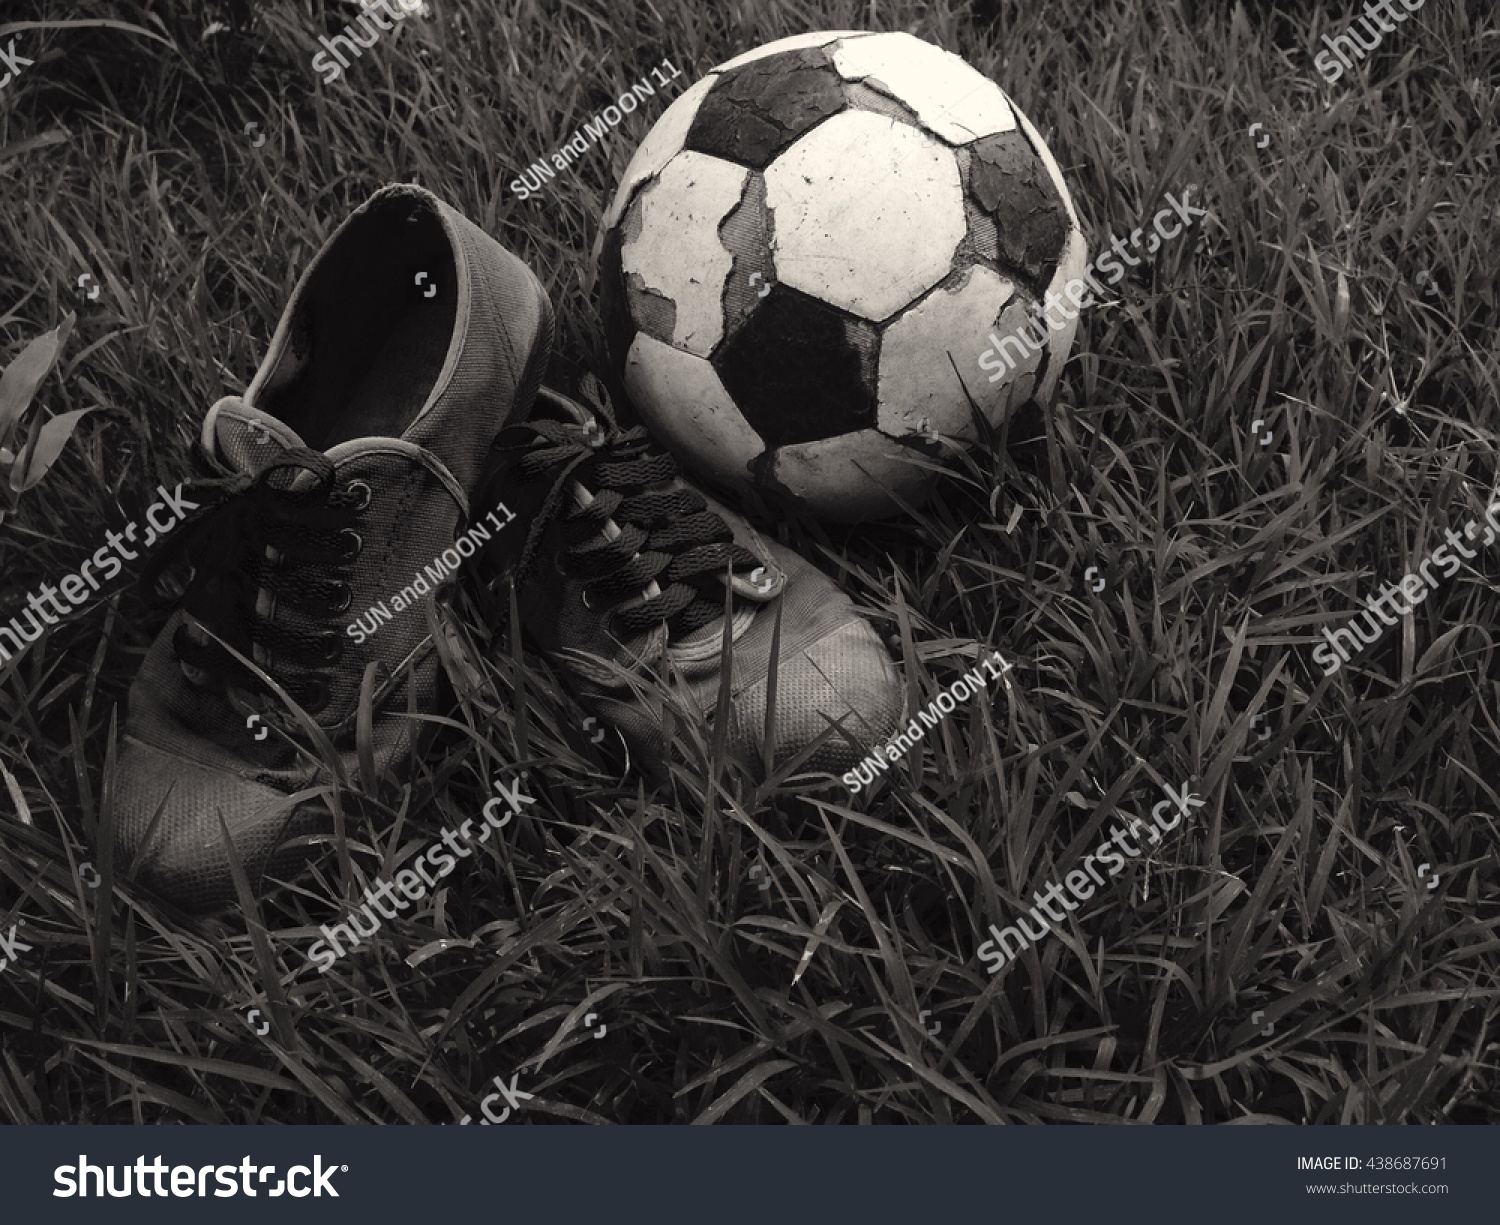 soccer ball black and white photography pictures to pin on